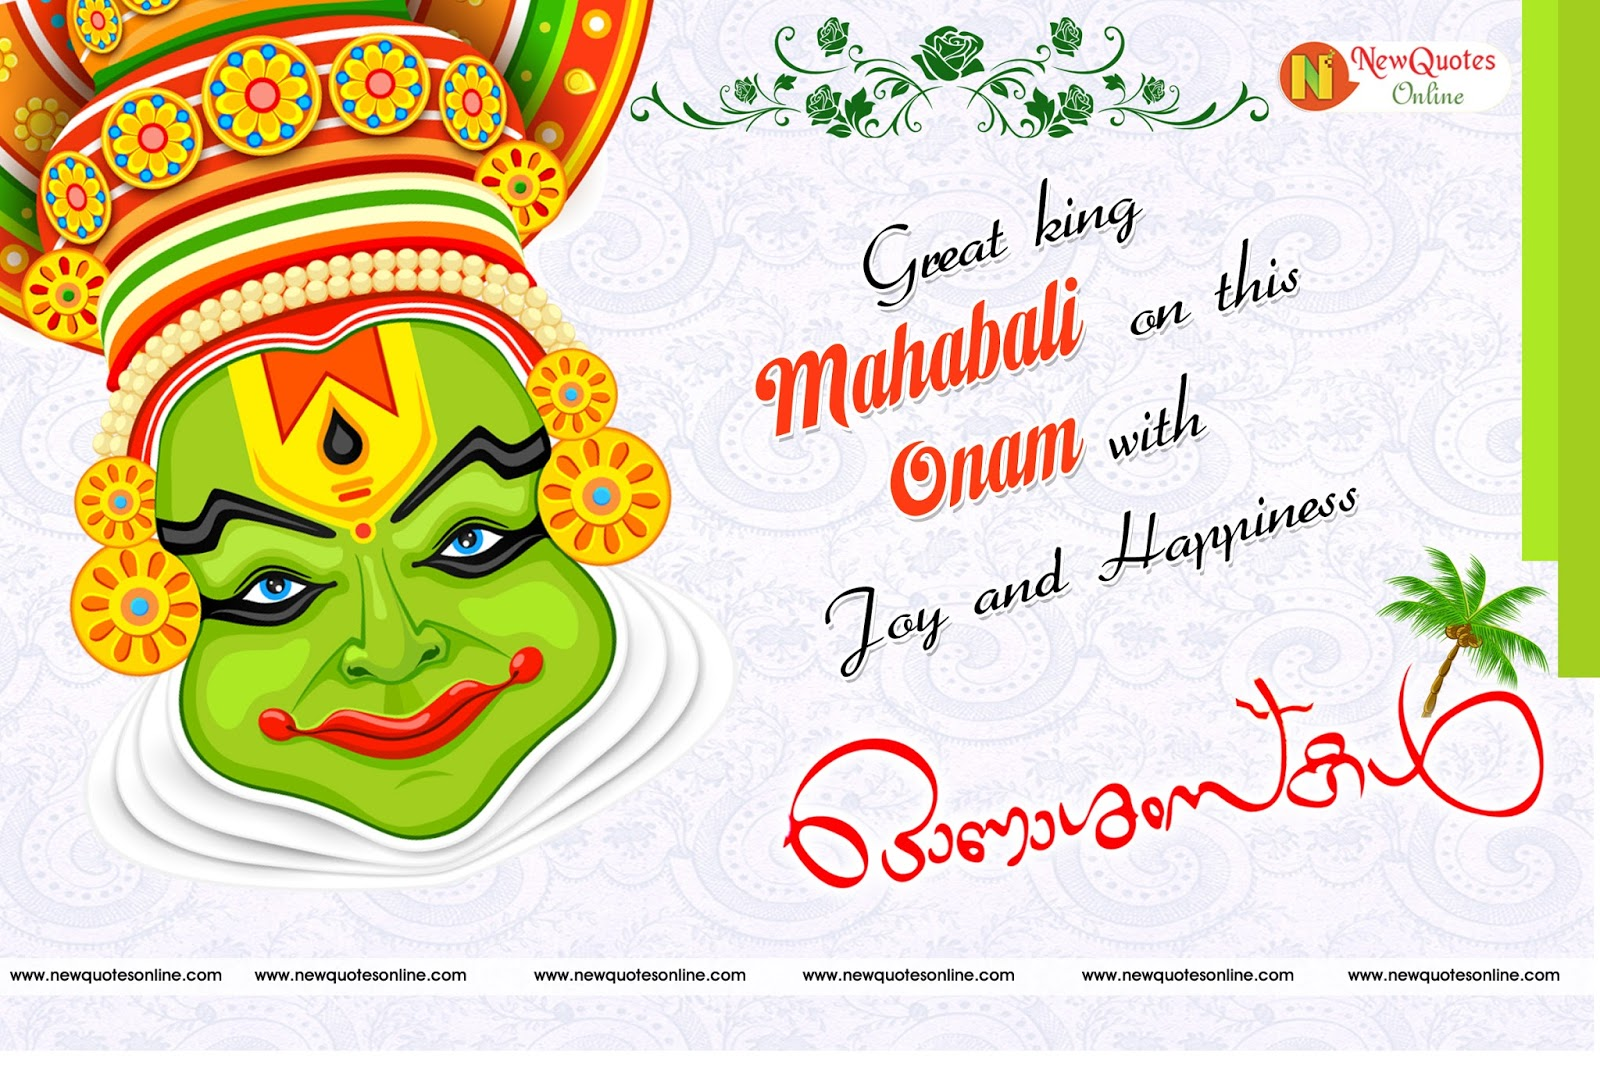 Download happy onam wishes and greetings in malayalam new quotes happy onam whatsapp dp facebook profile pictures onashamsakal m4hsunfo